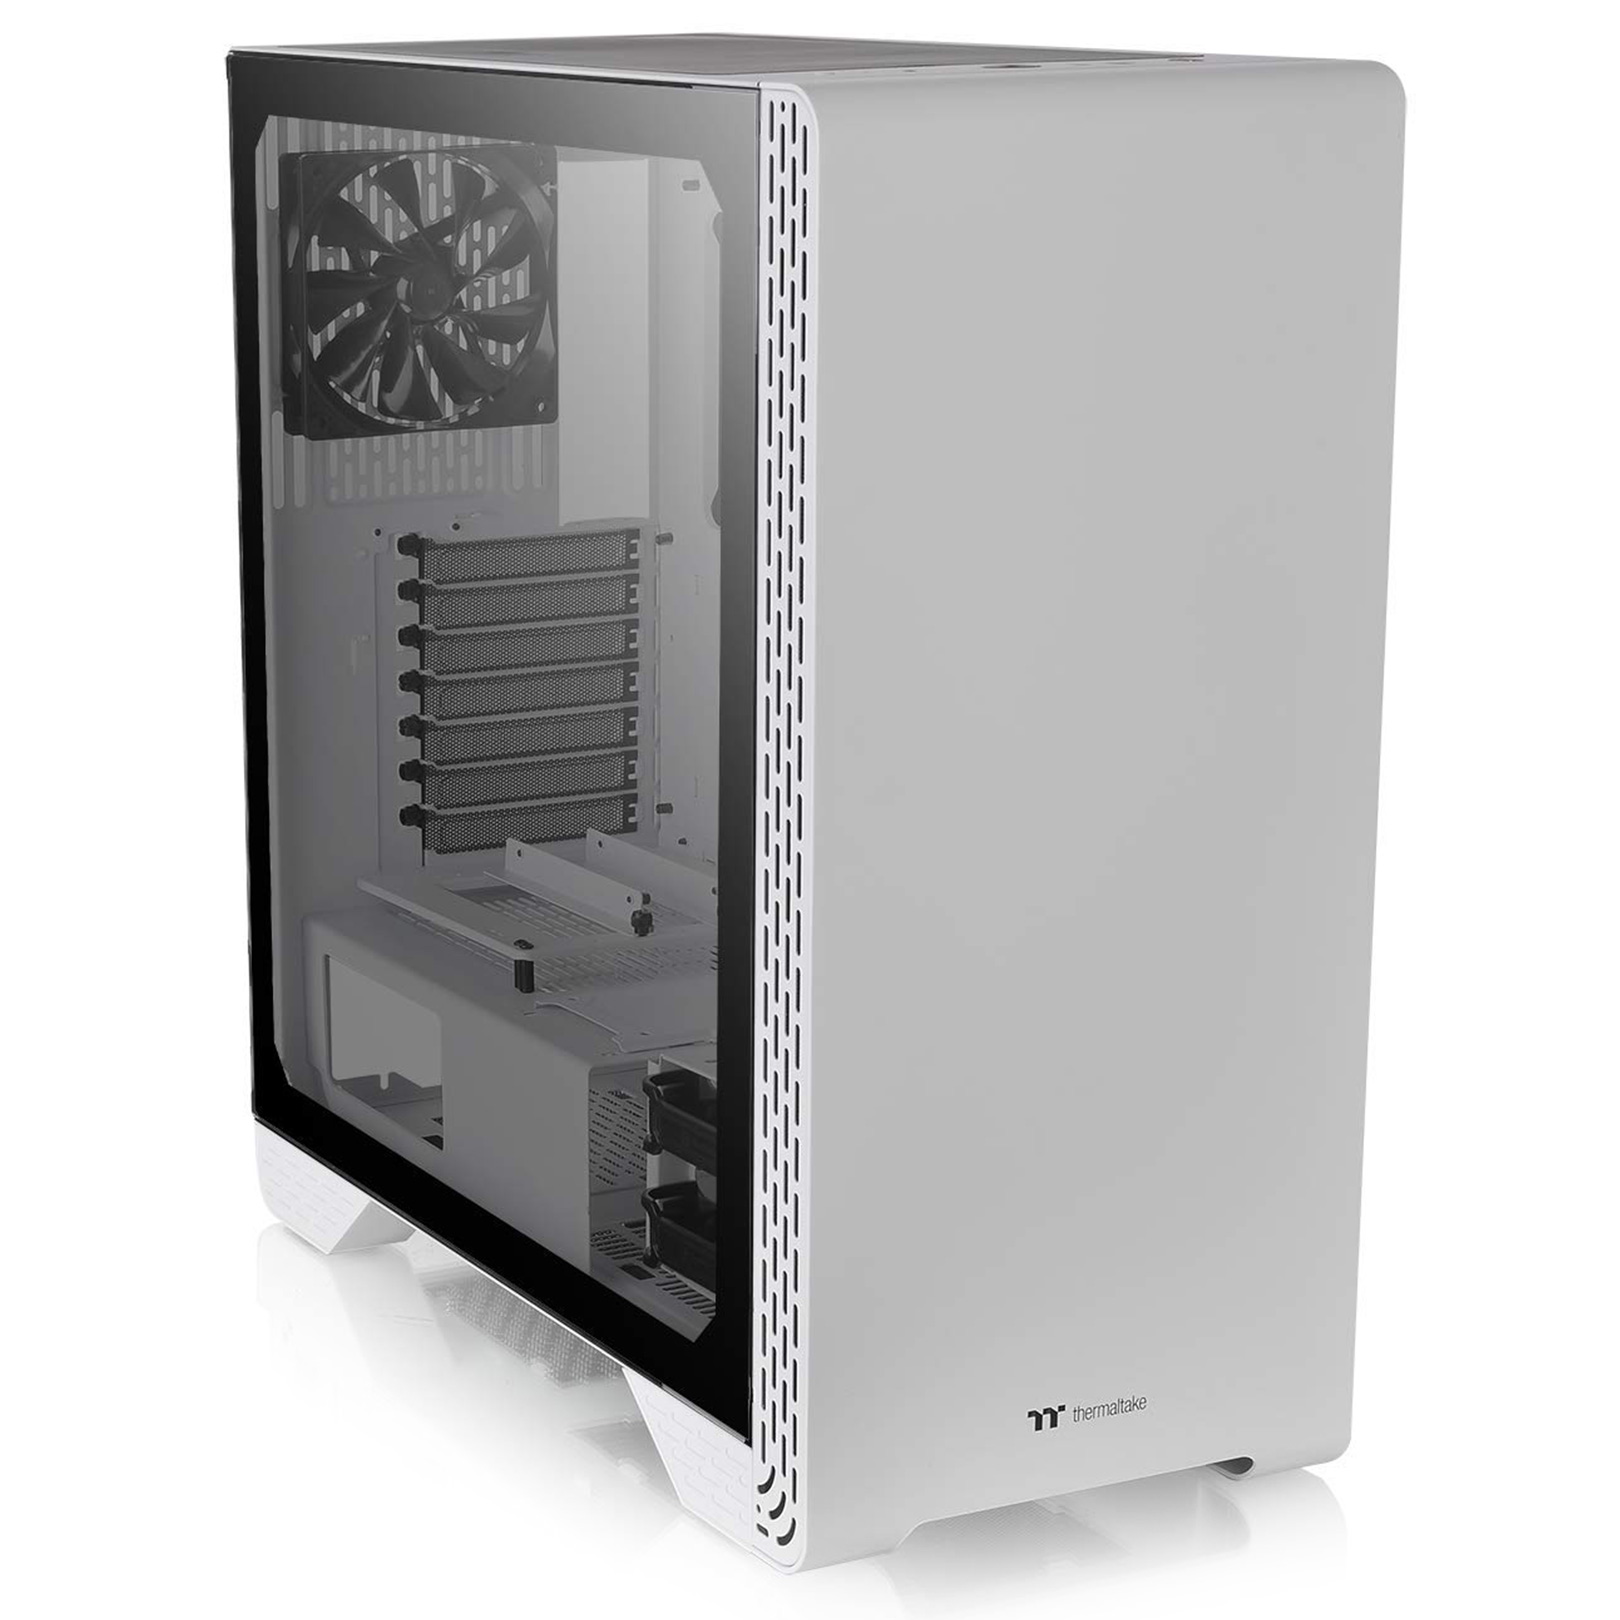 Thermaltake S300 Tempered Glass Mid-Tower Case Snow Edition